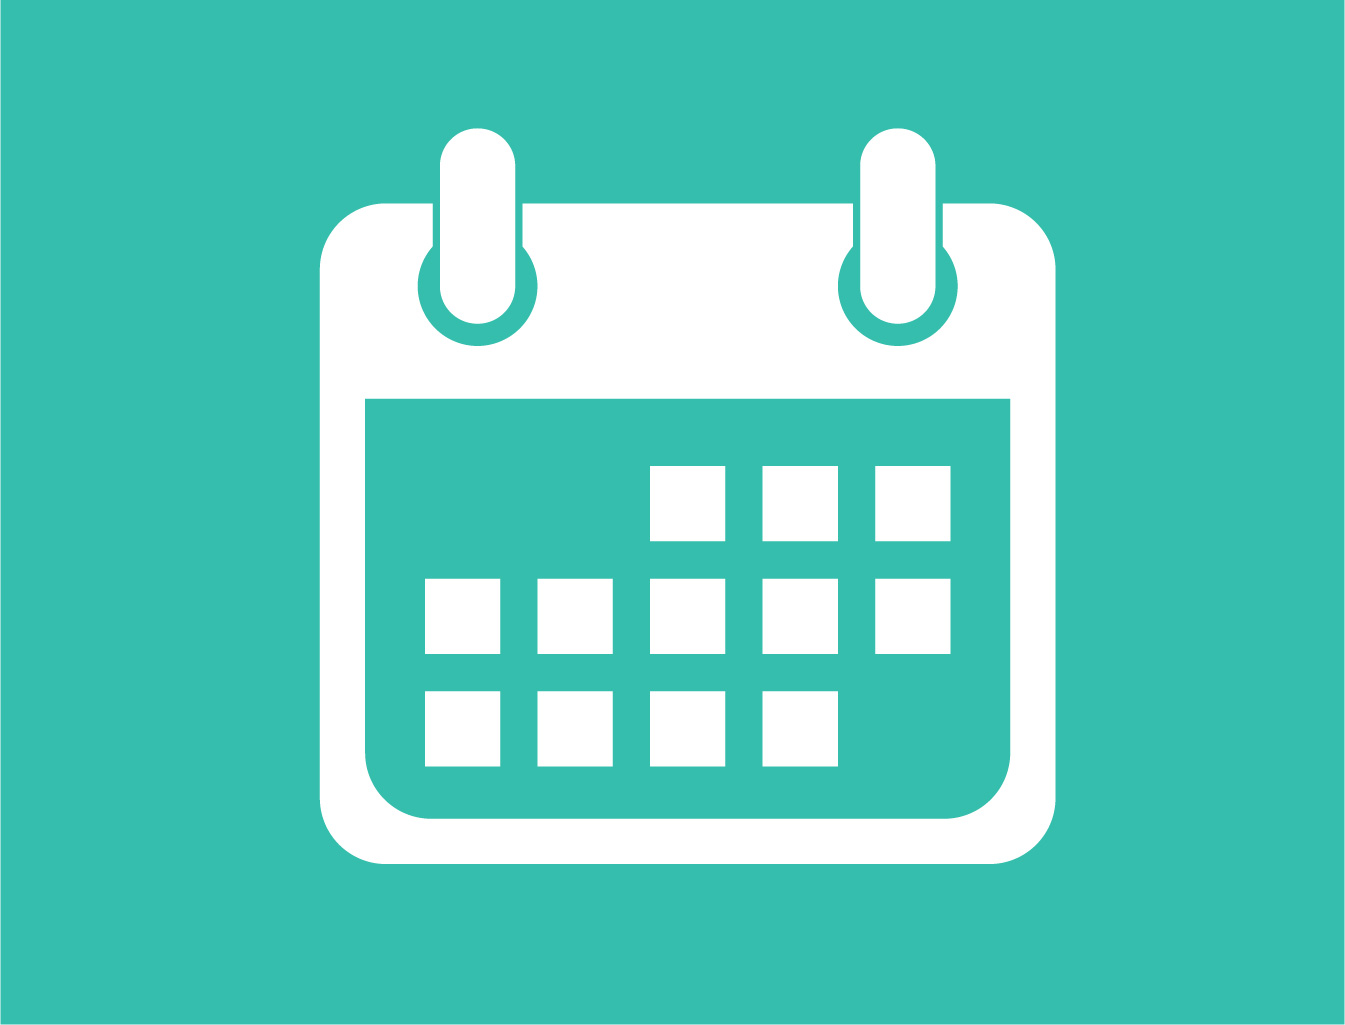 icon with a calendar on light blue background